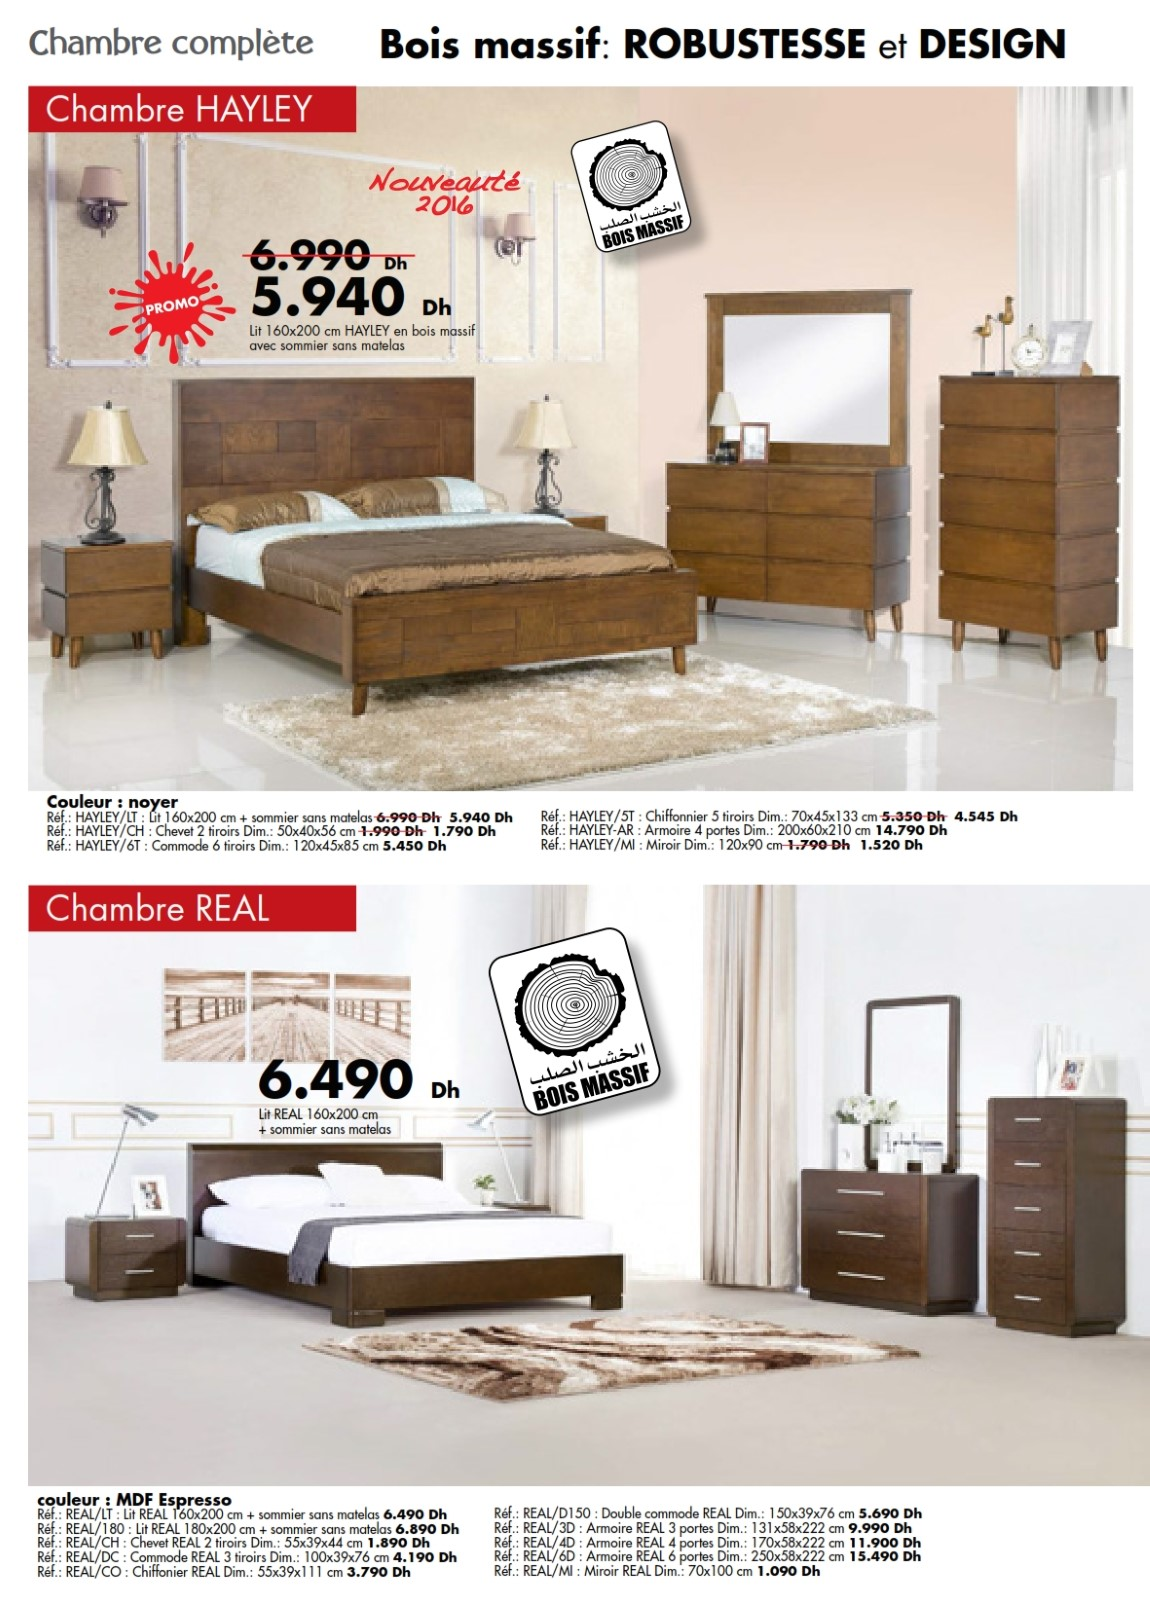 catalogue kitea chambre coucher rangement collection 2016 les soldes et promotions du maroc. Black Bedroom Furniture Sets. Home Design Ideas